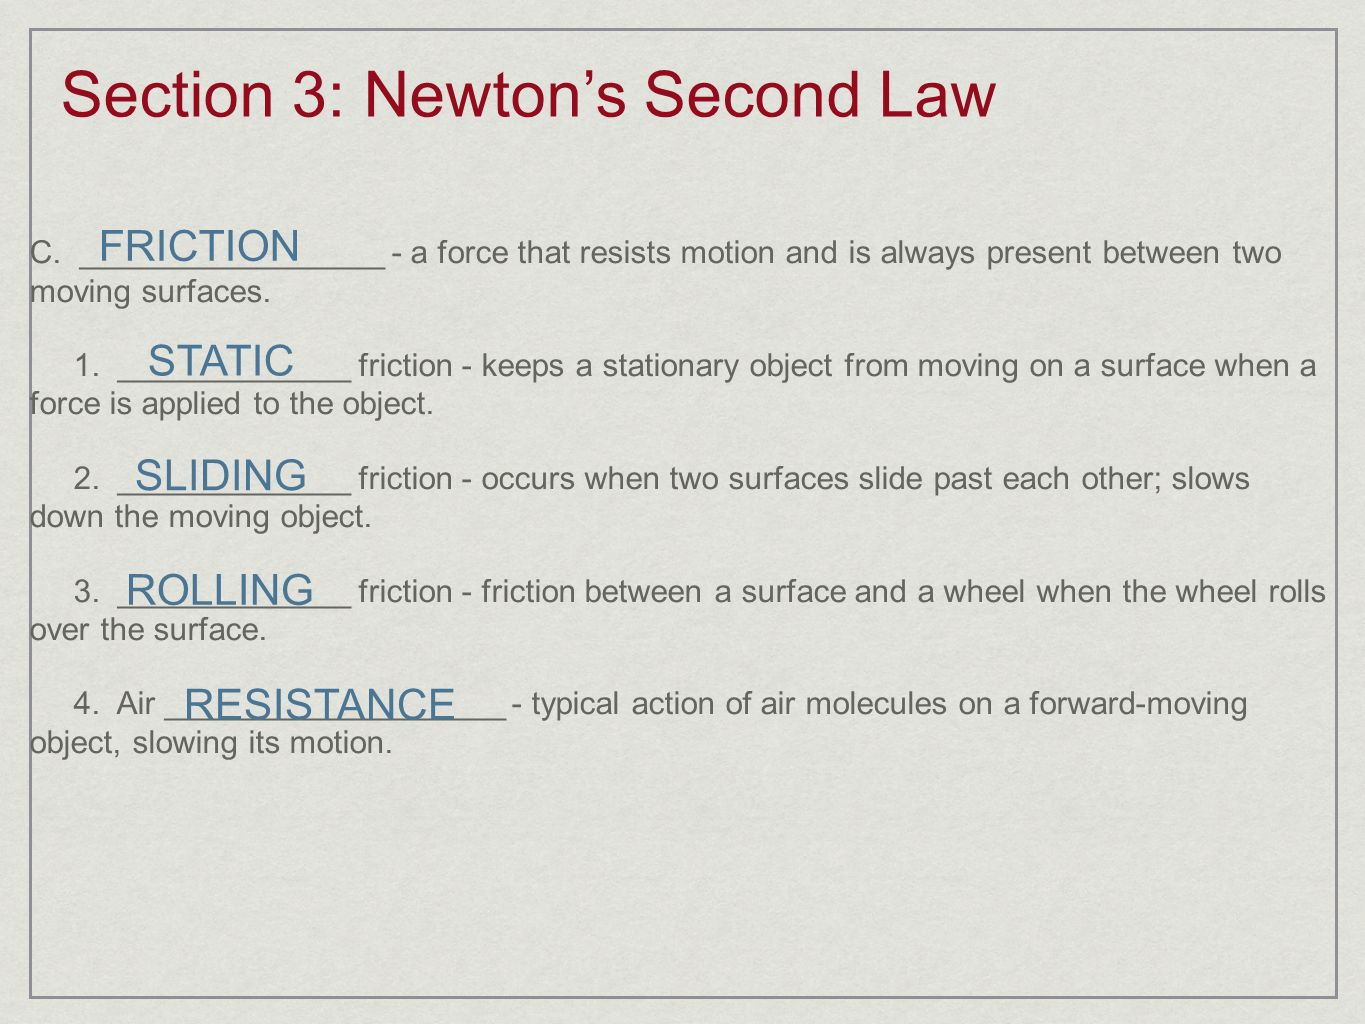 Section 3: Newton's Second Law